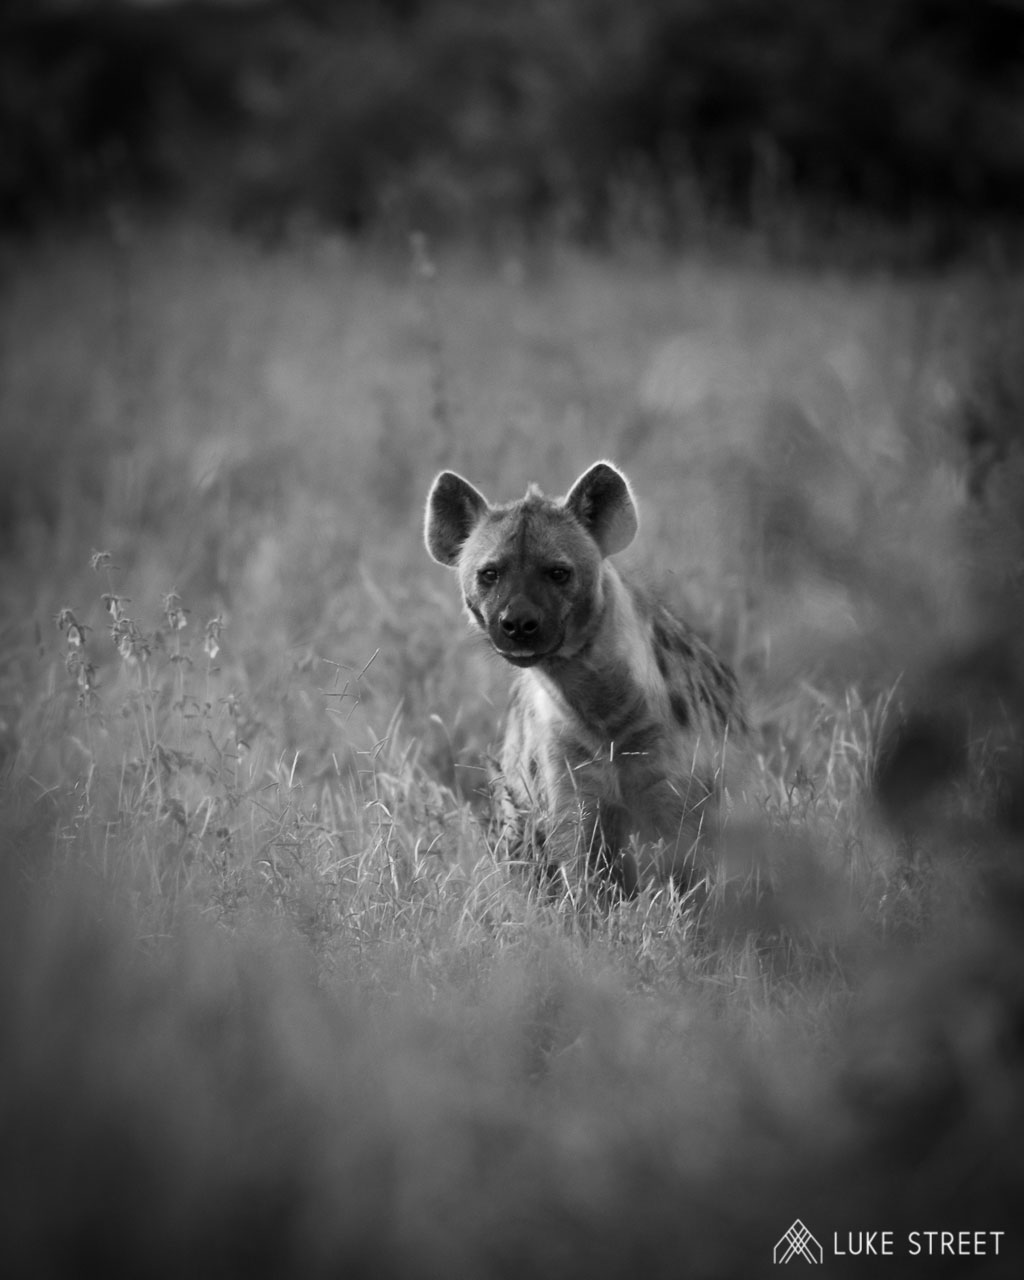 Tanda Tula - hyena in the Greater Kruger